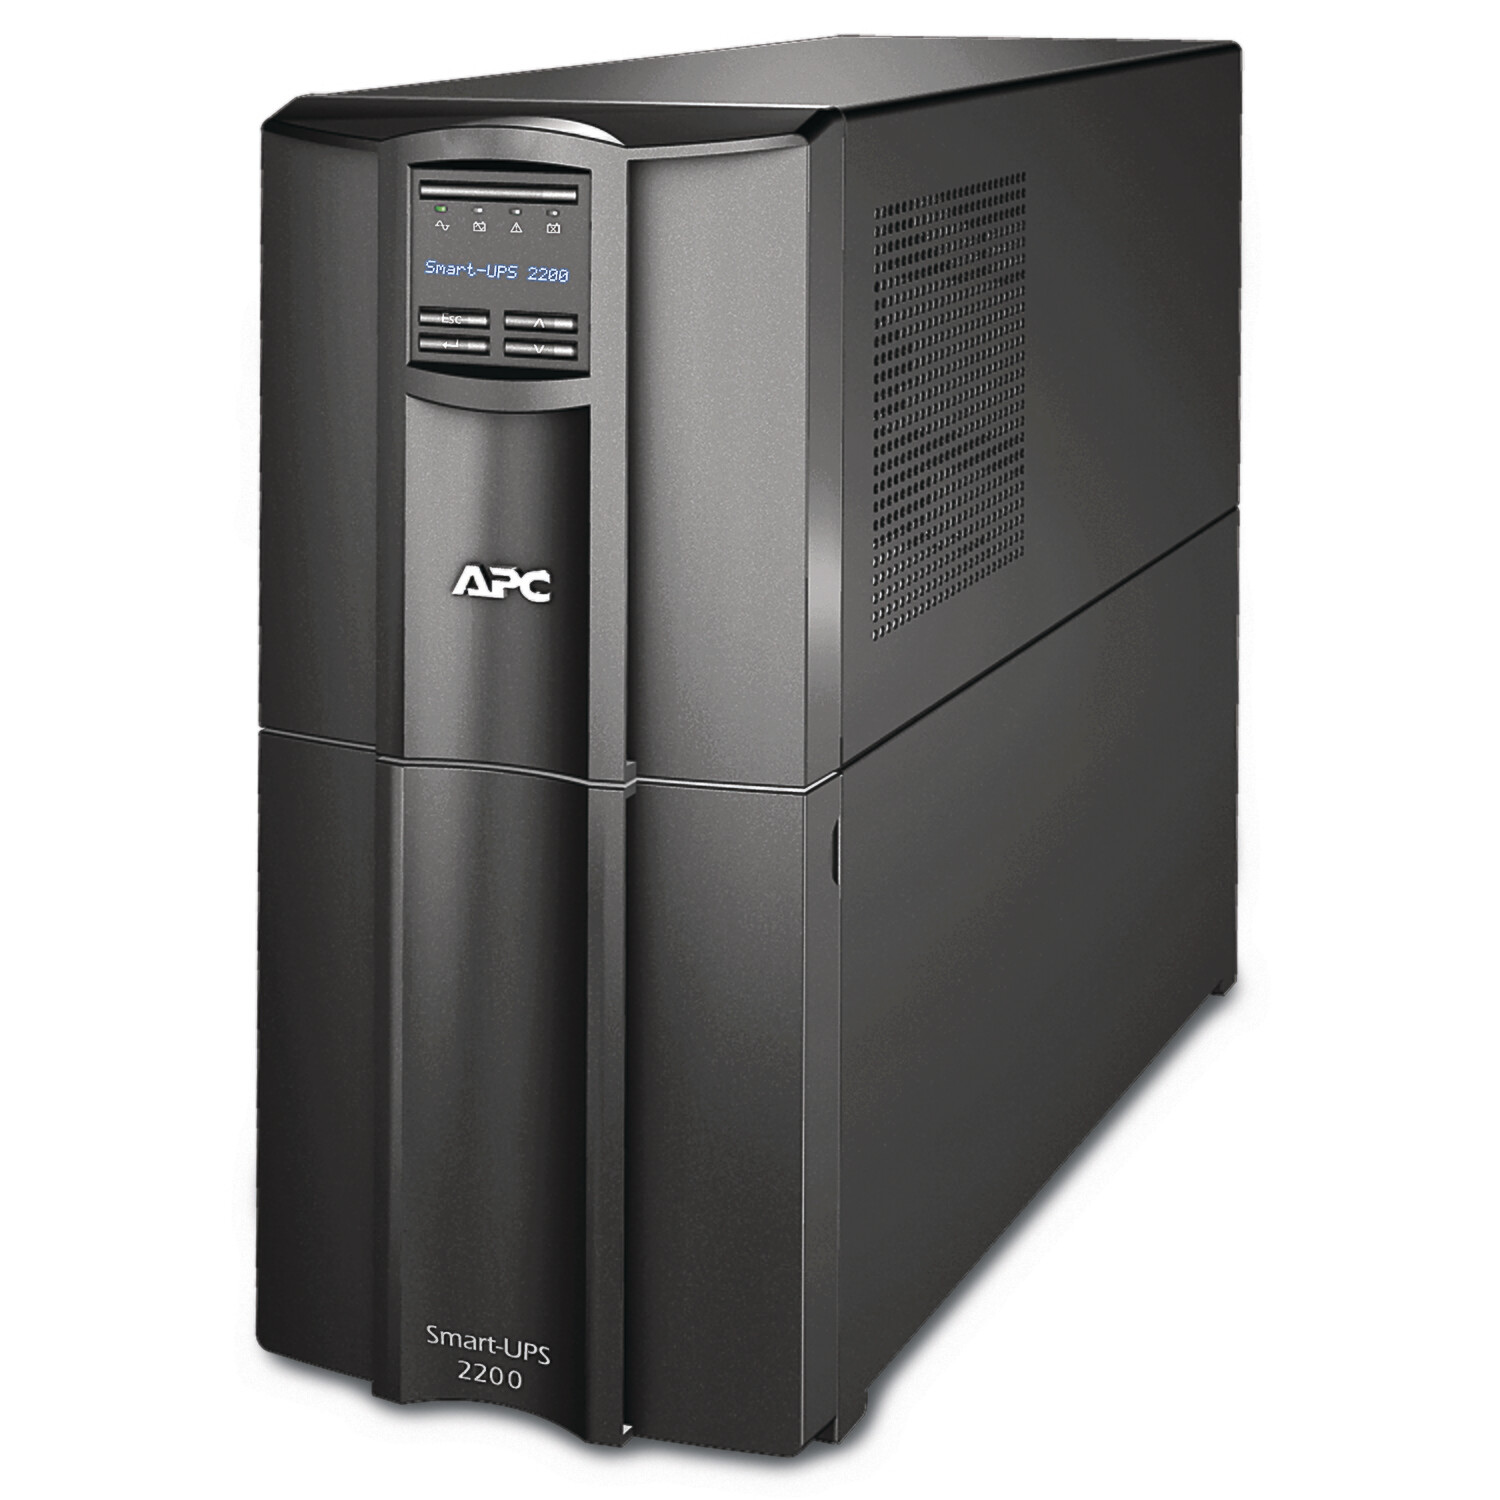 APC Smart-UPS 2200VA LCD 230V with SmartConnect SMT2200IC